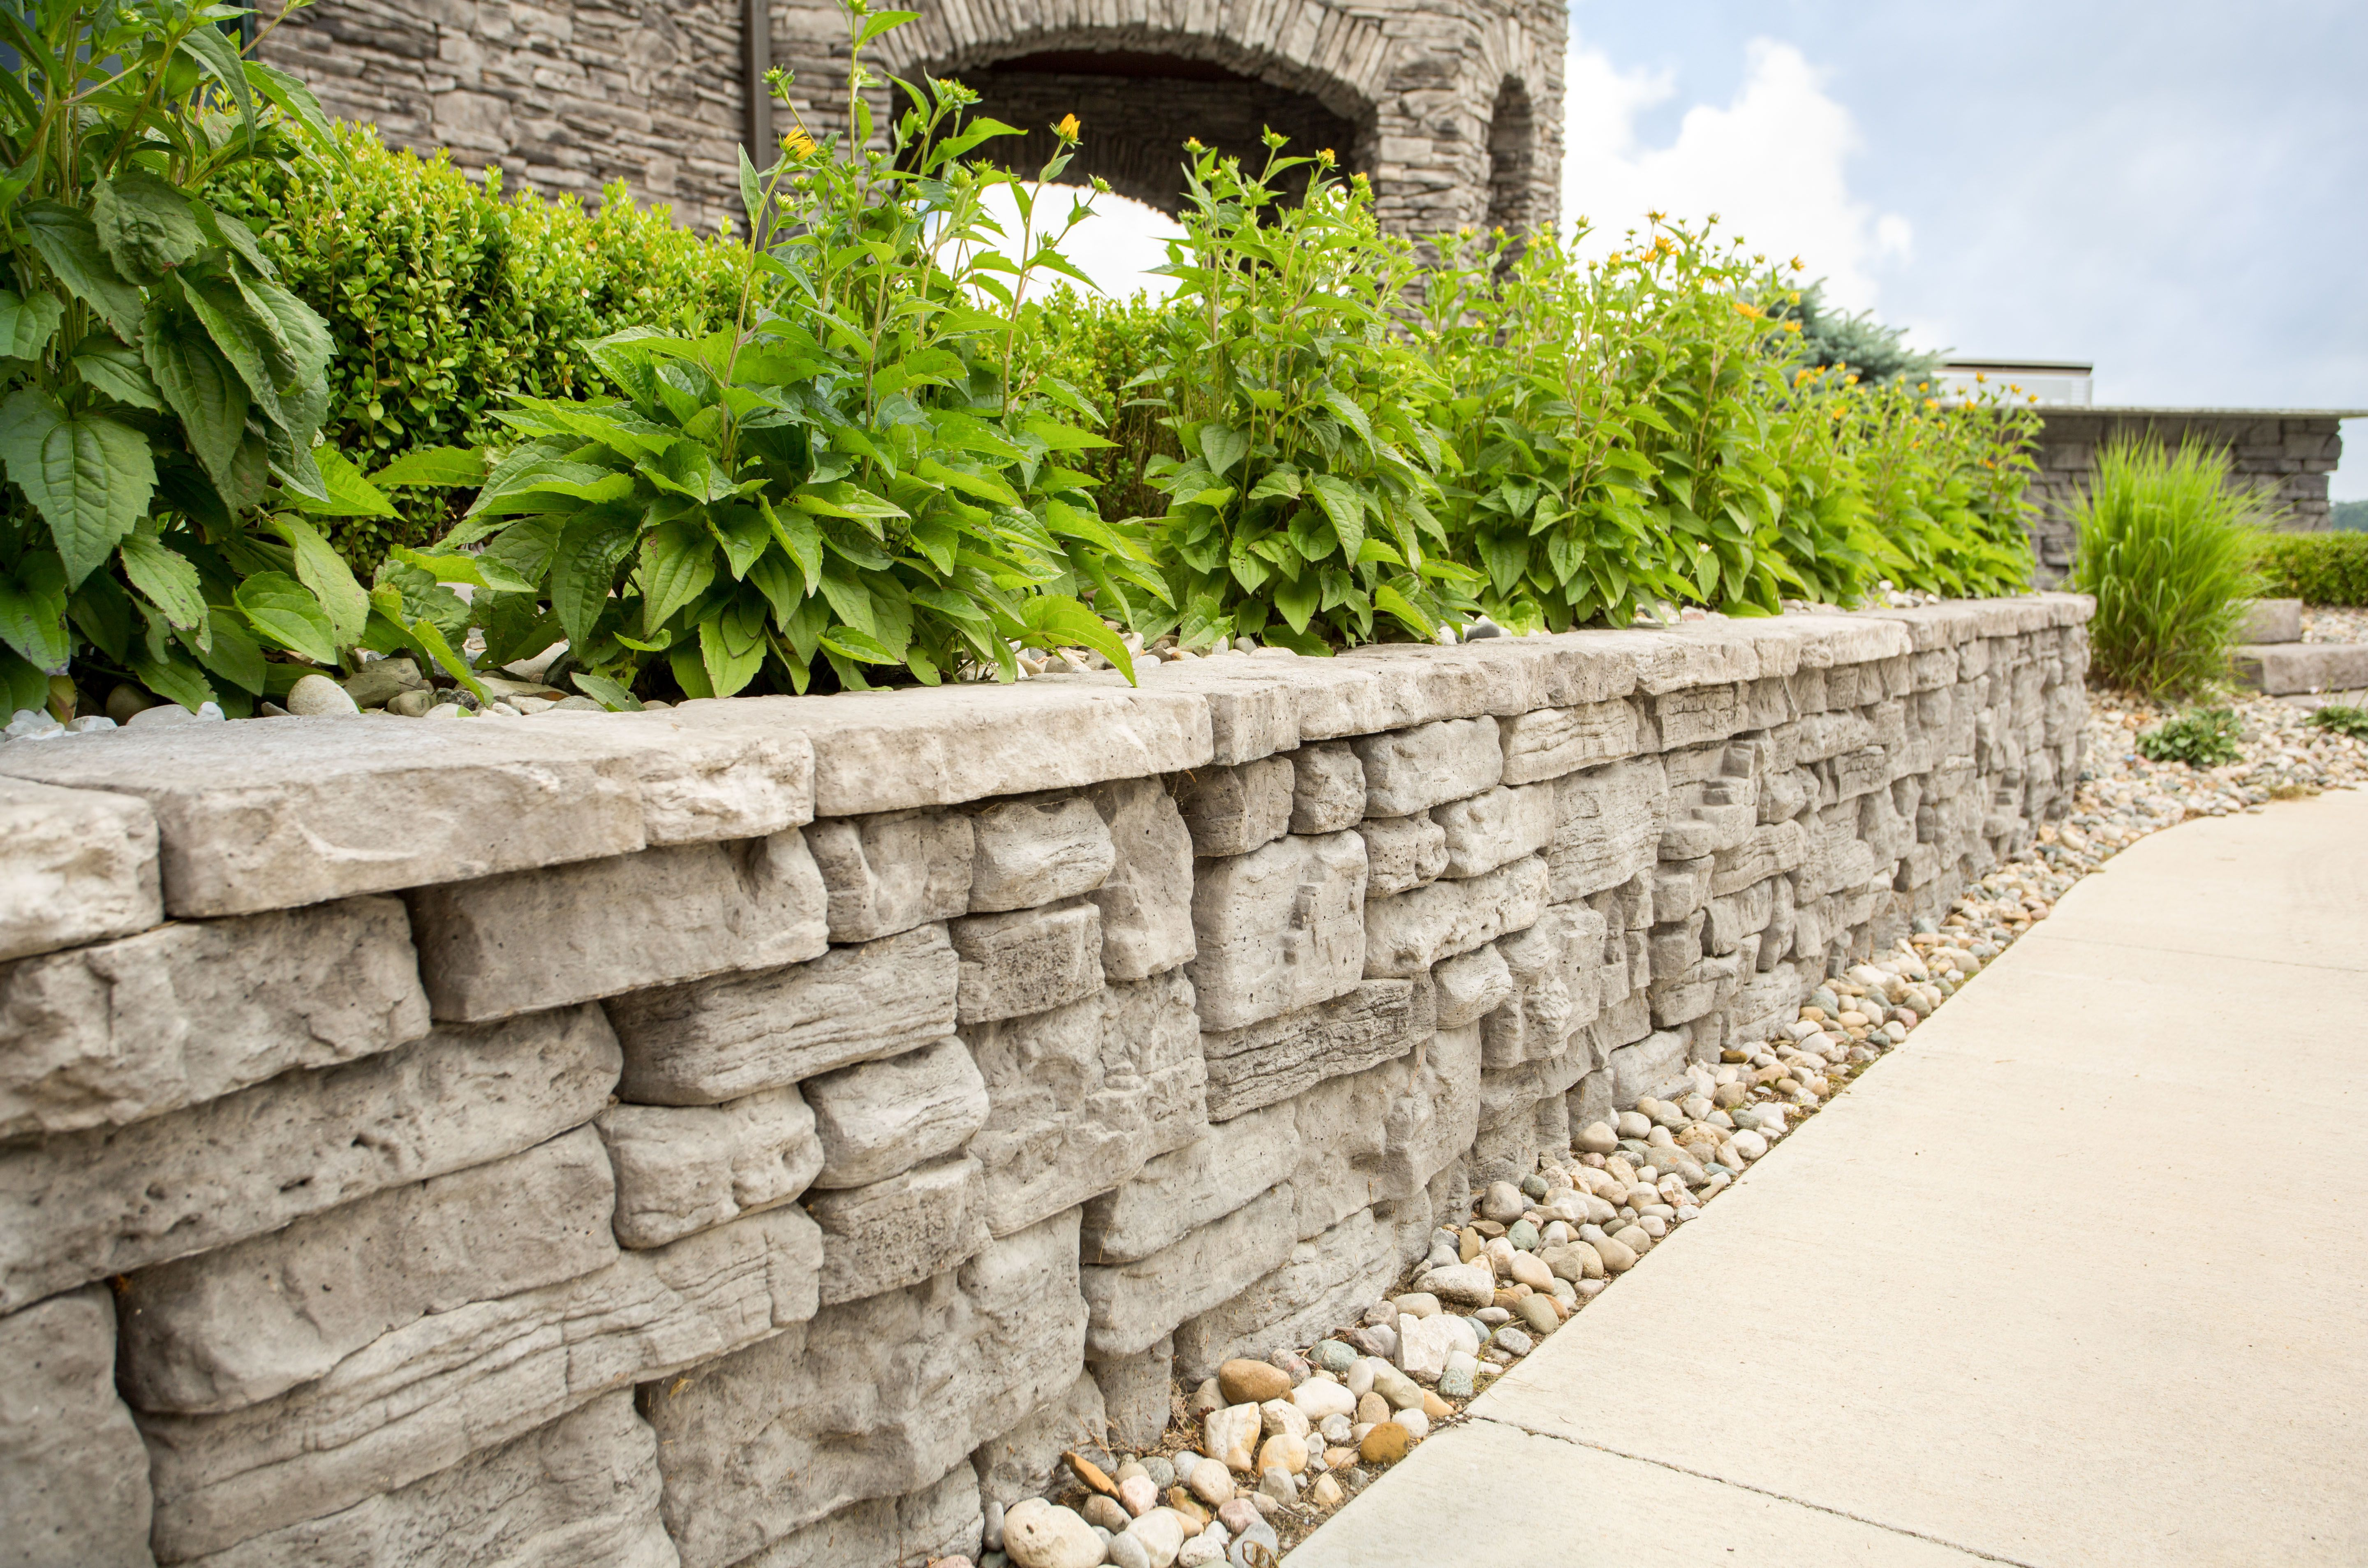 Belvedere retaining wall with lush green landscaping